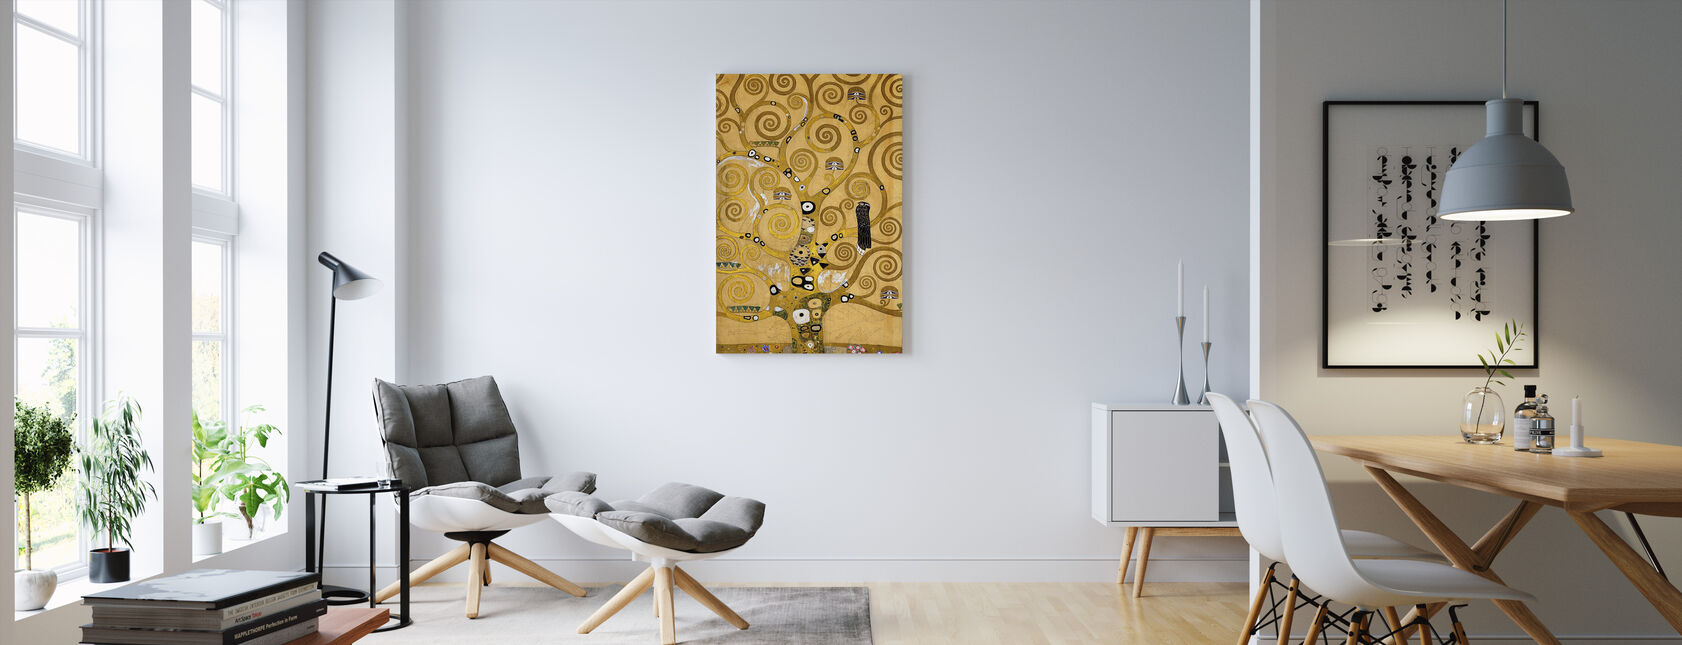 Klimt, Gustav - The Tree of Life - Canvas print - Living Room